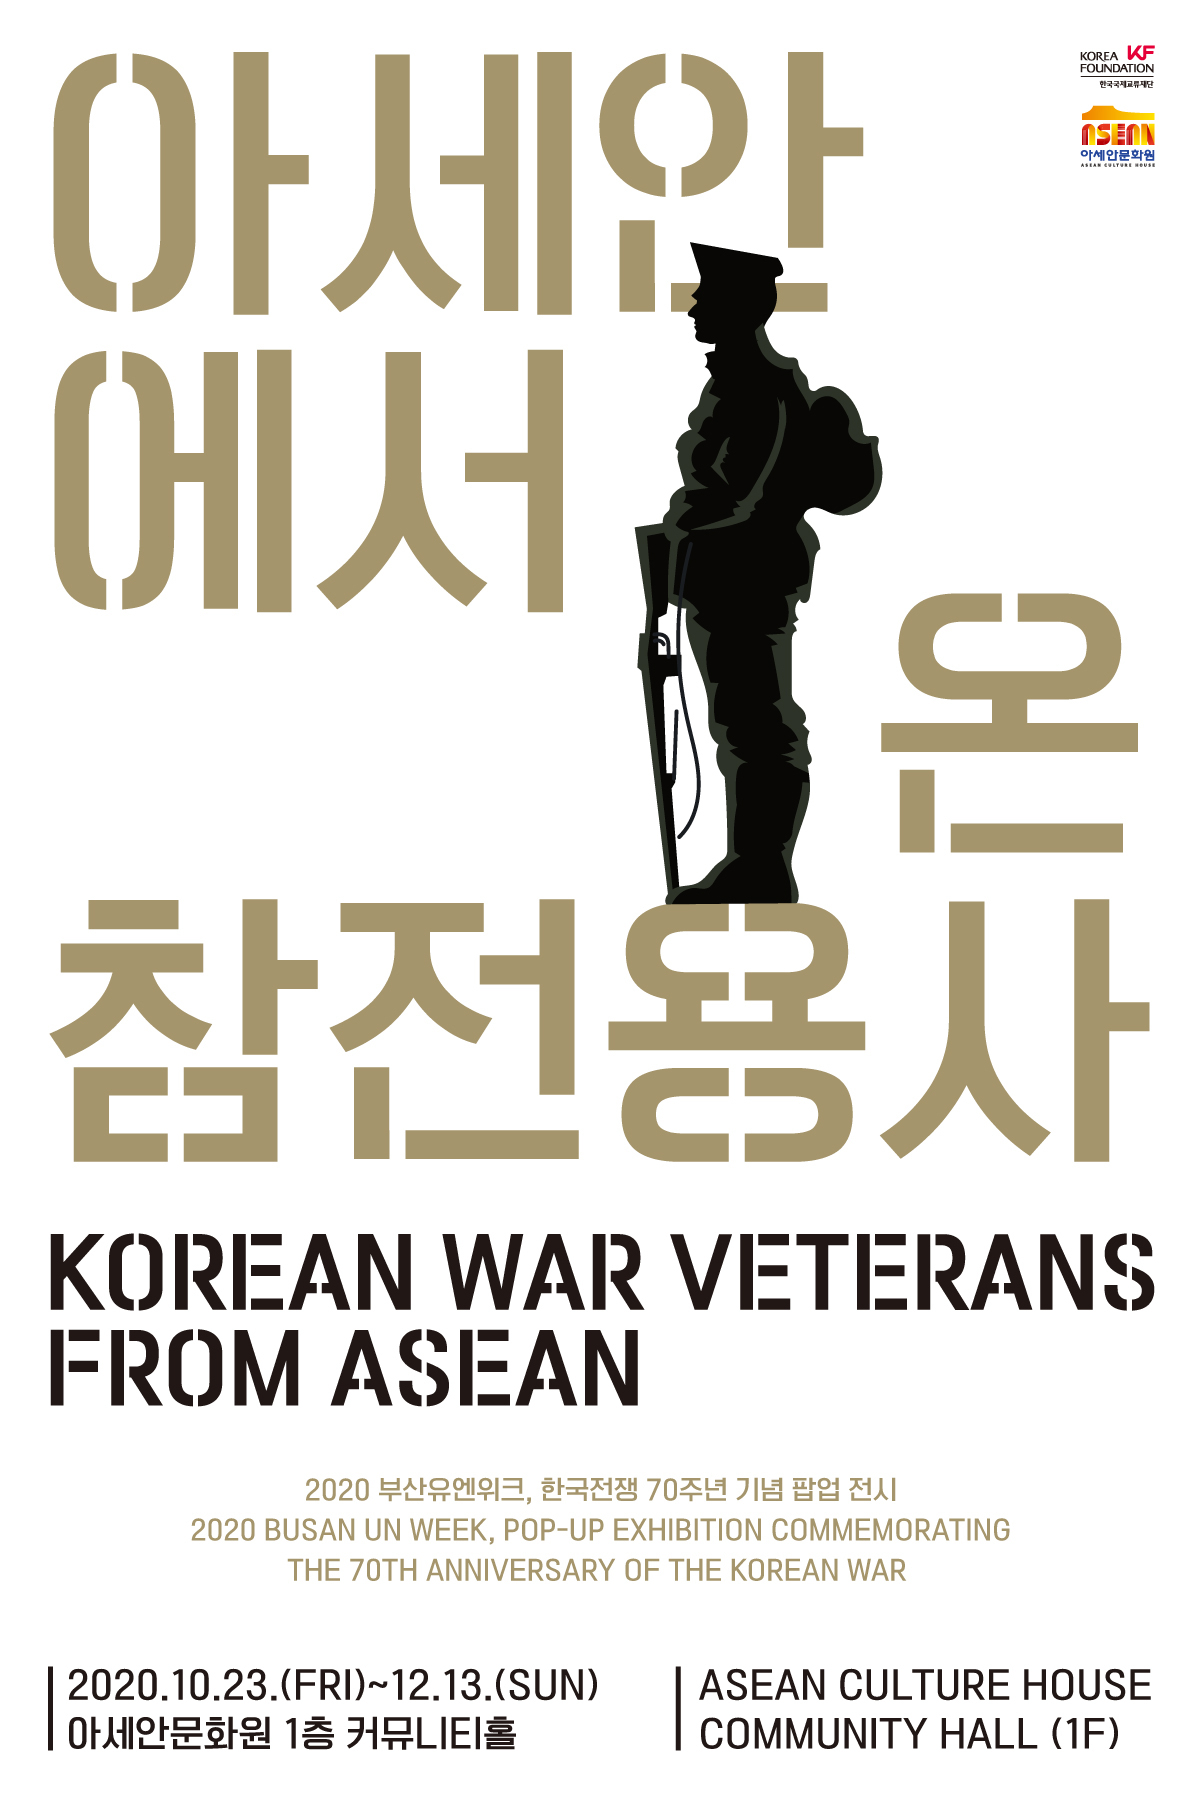 Exhibition celebrates SE Asian vets